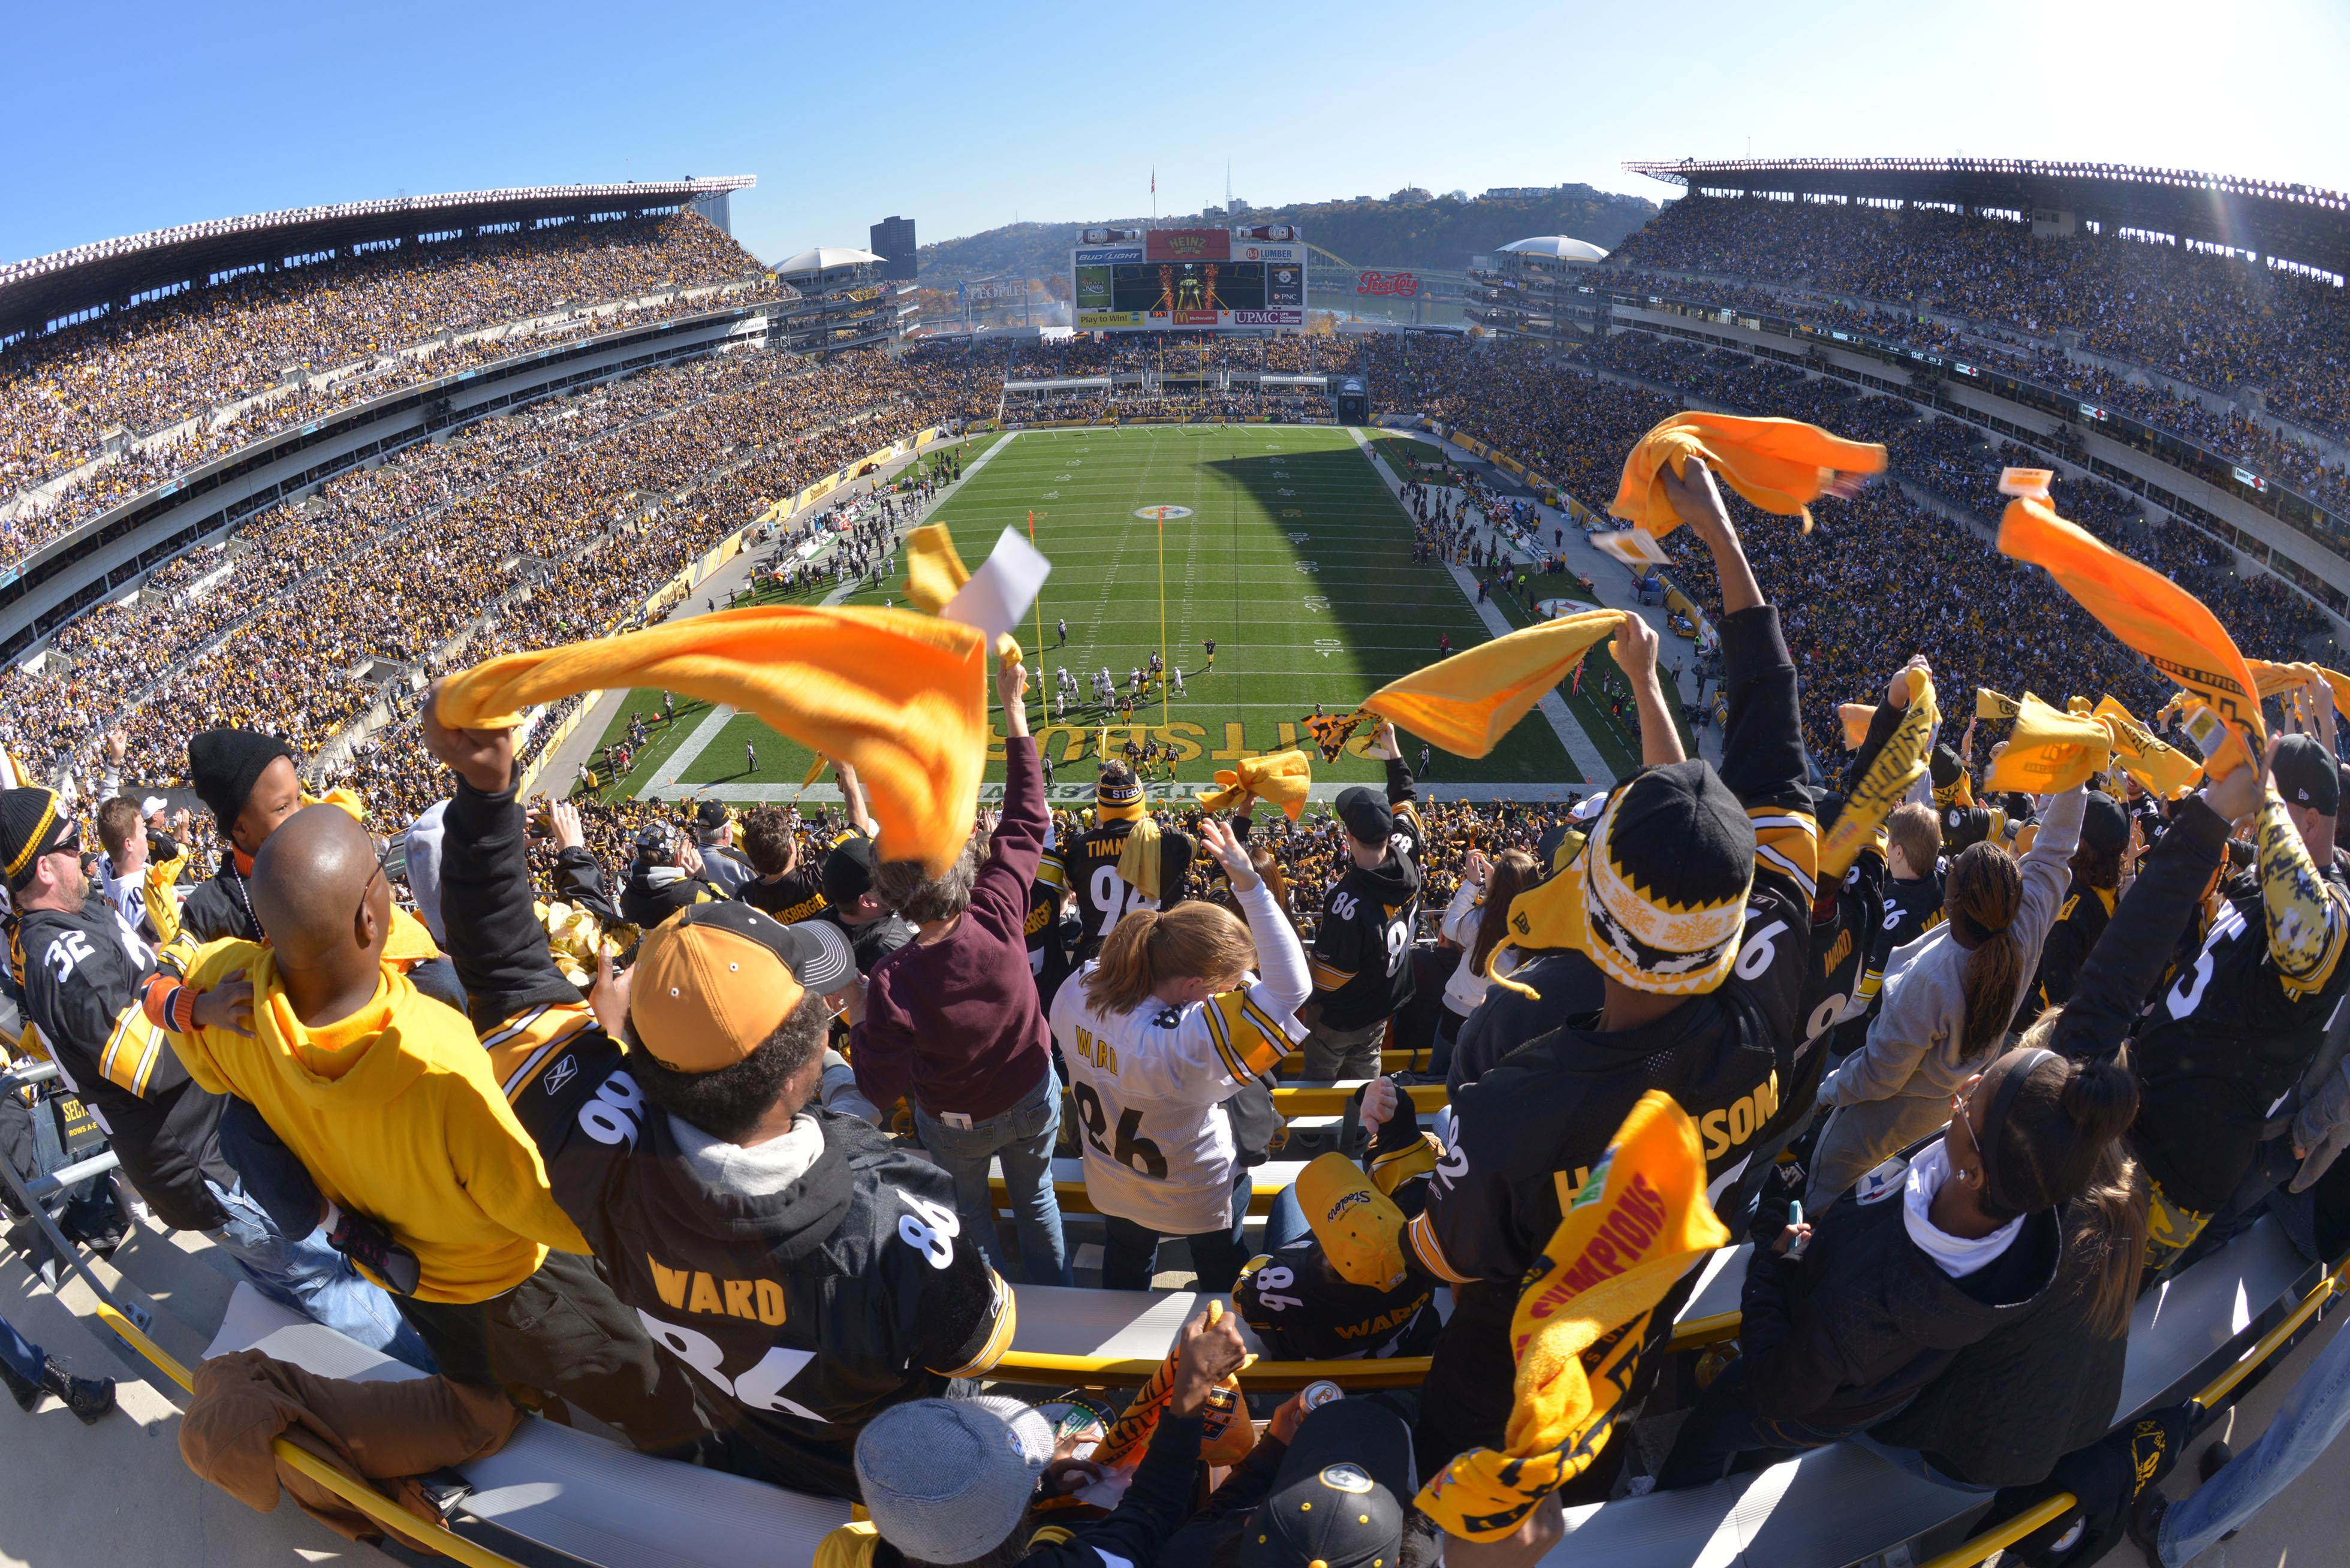 8912022-nfl-oakland-raiders-at-pittsburgh-steelers